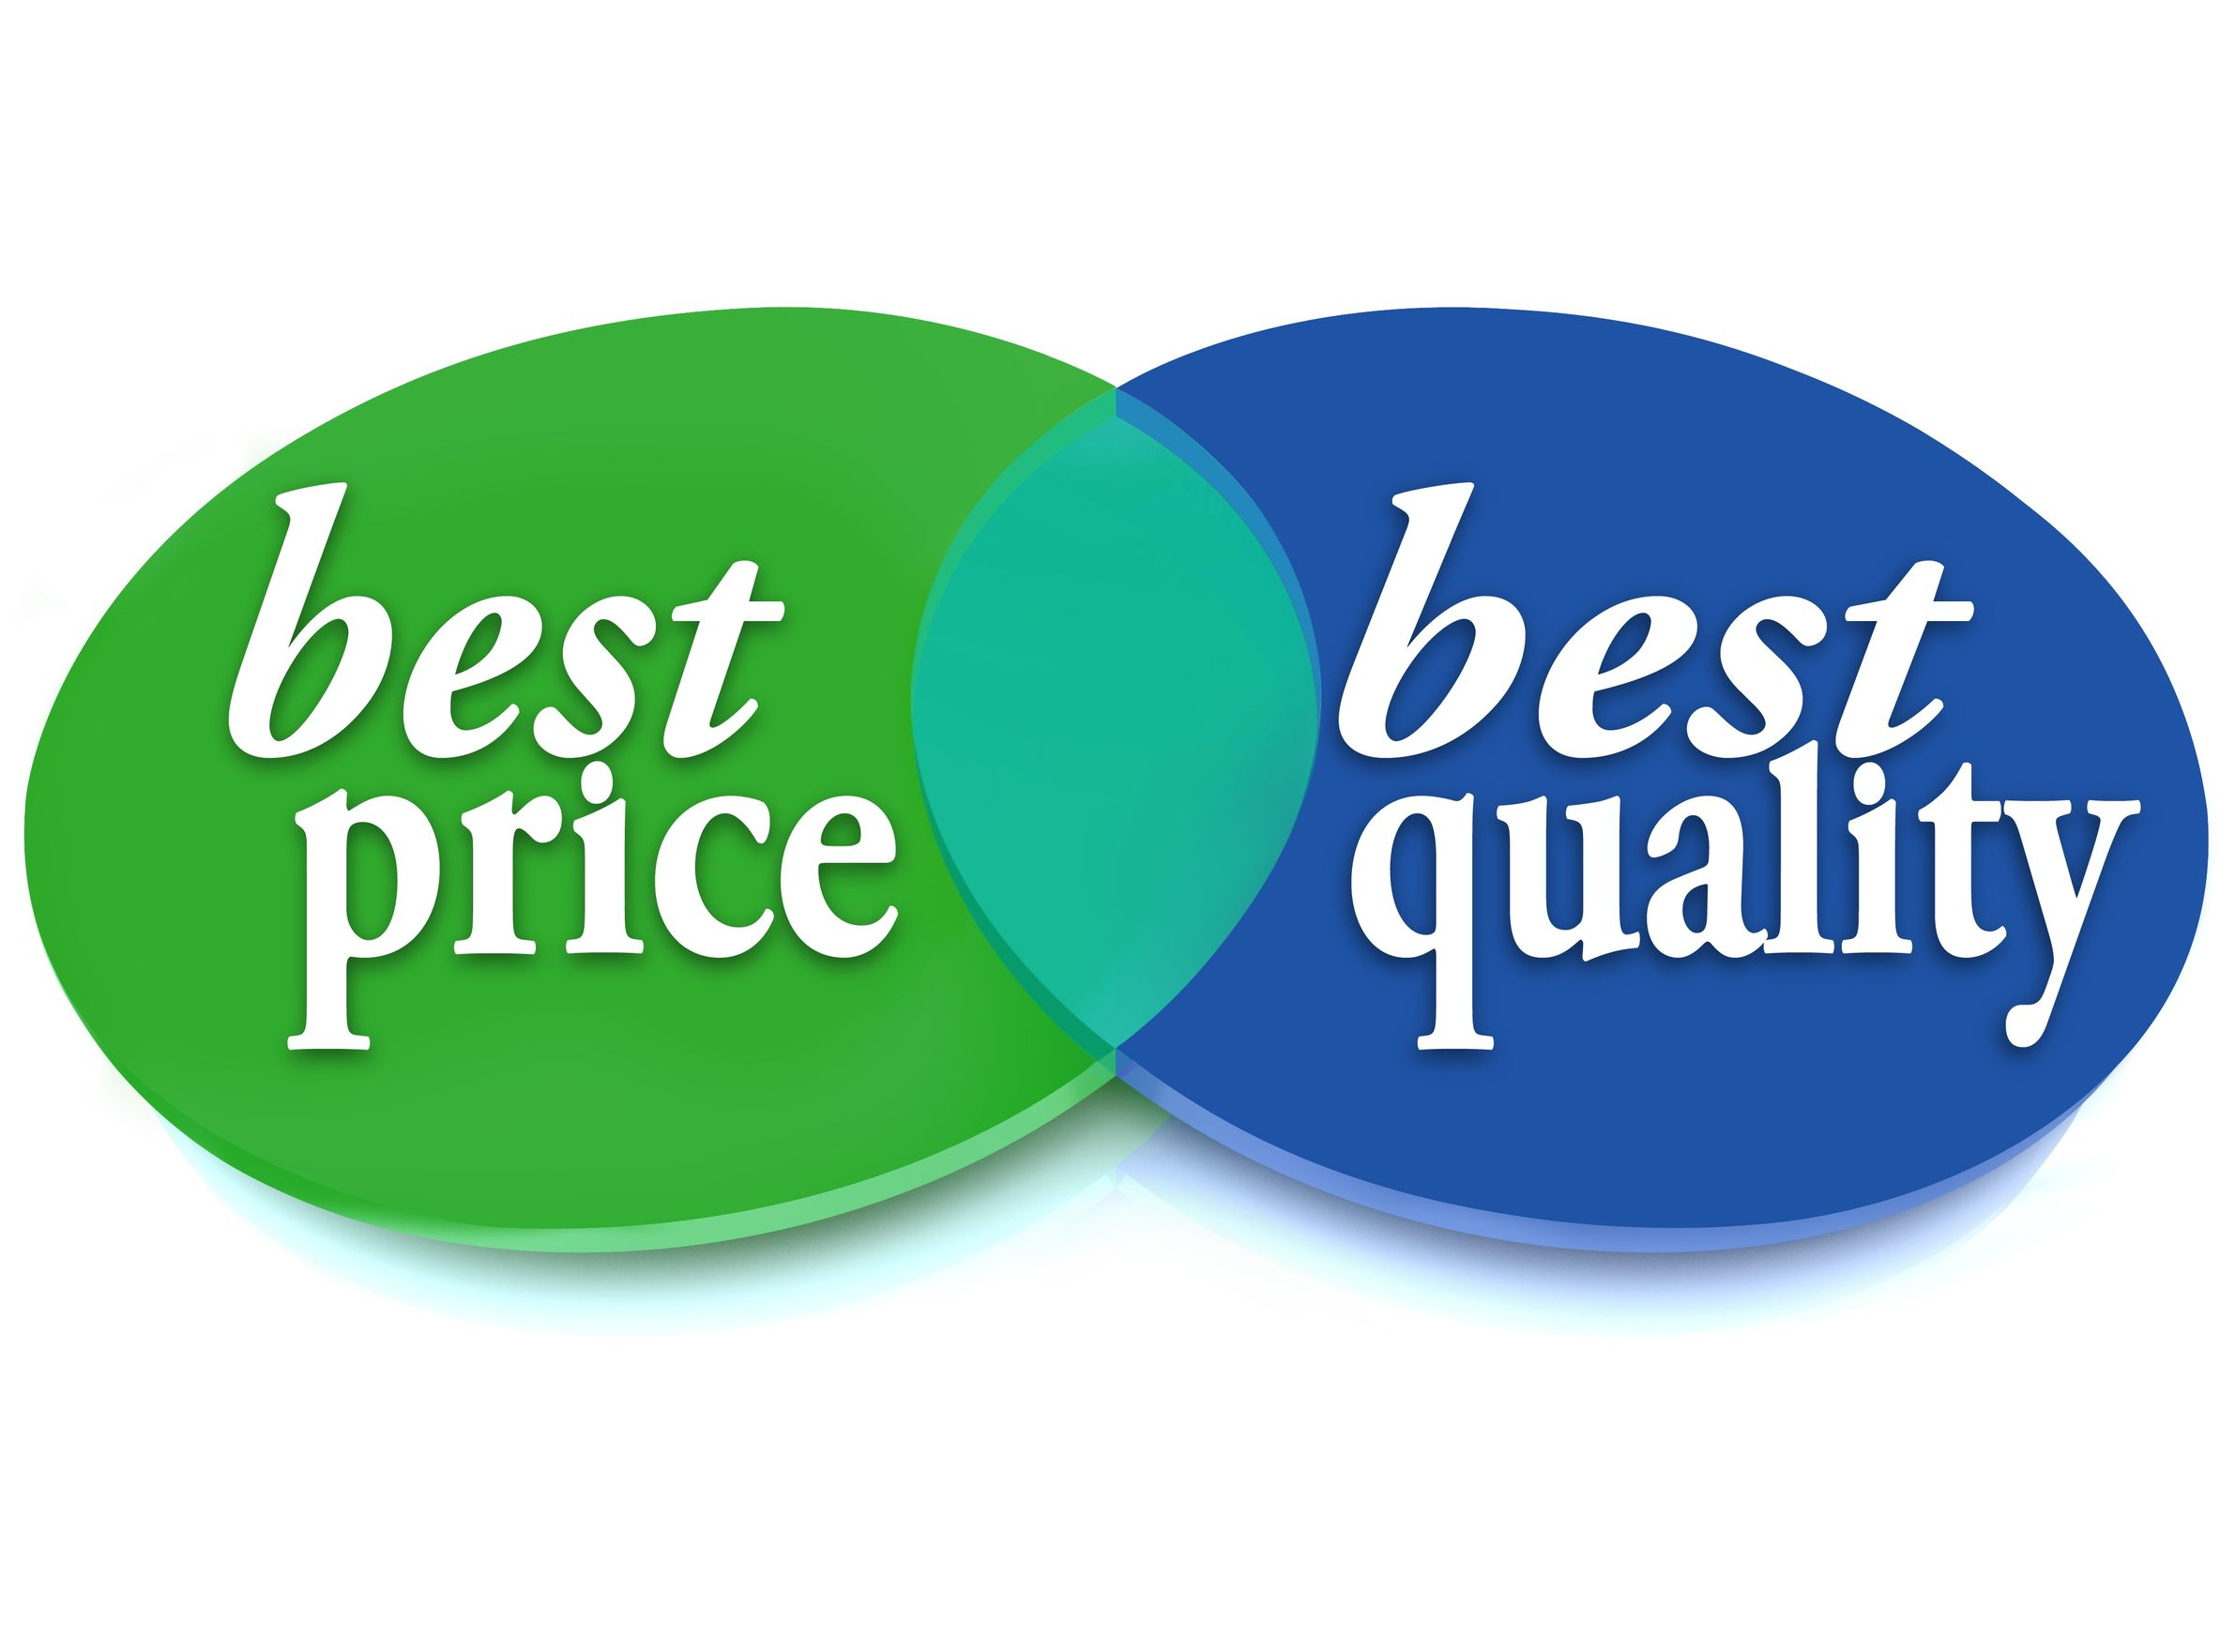 Quotes About Quality And Price (63 Quotes